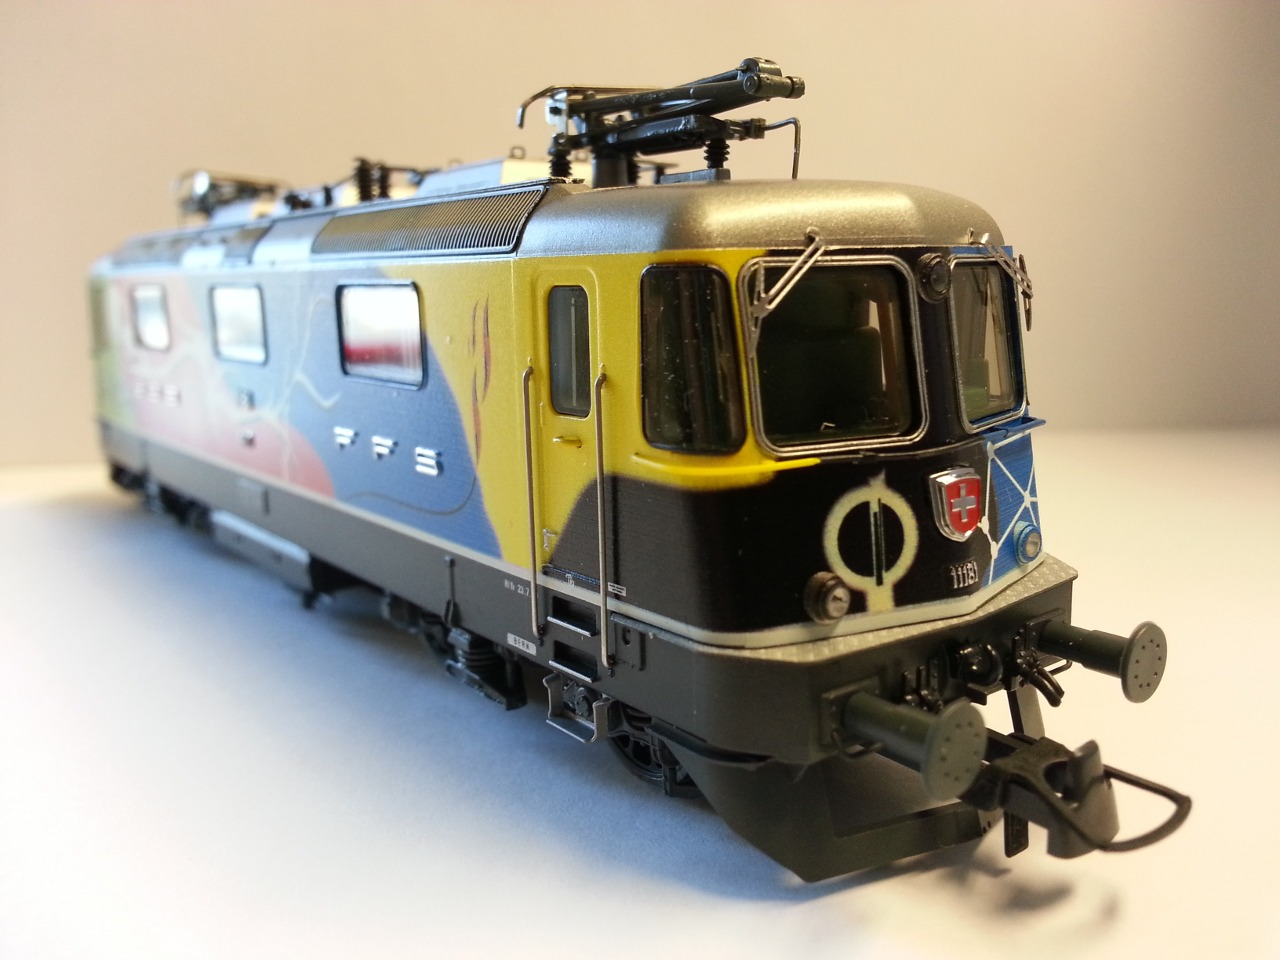 Roco 72410 - Elektrolokomotive Re 4/4 II der SBB - 11181 Bourret-Design